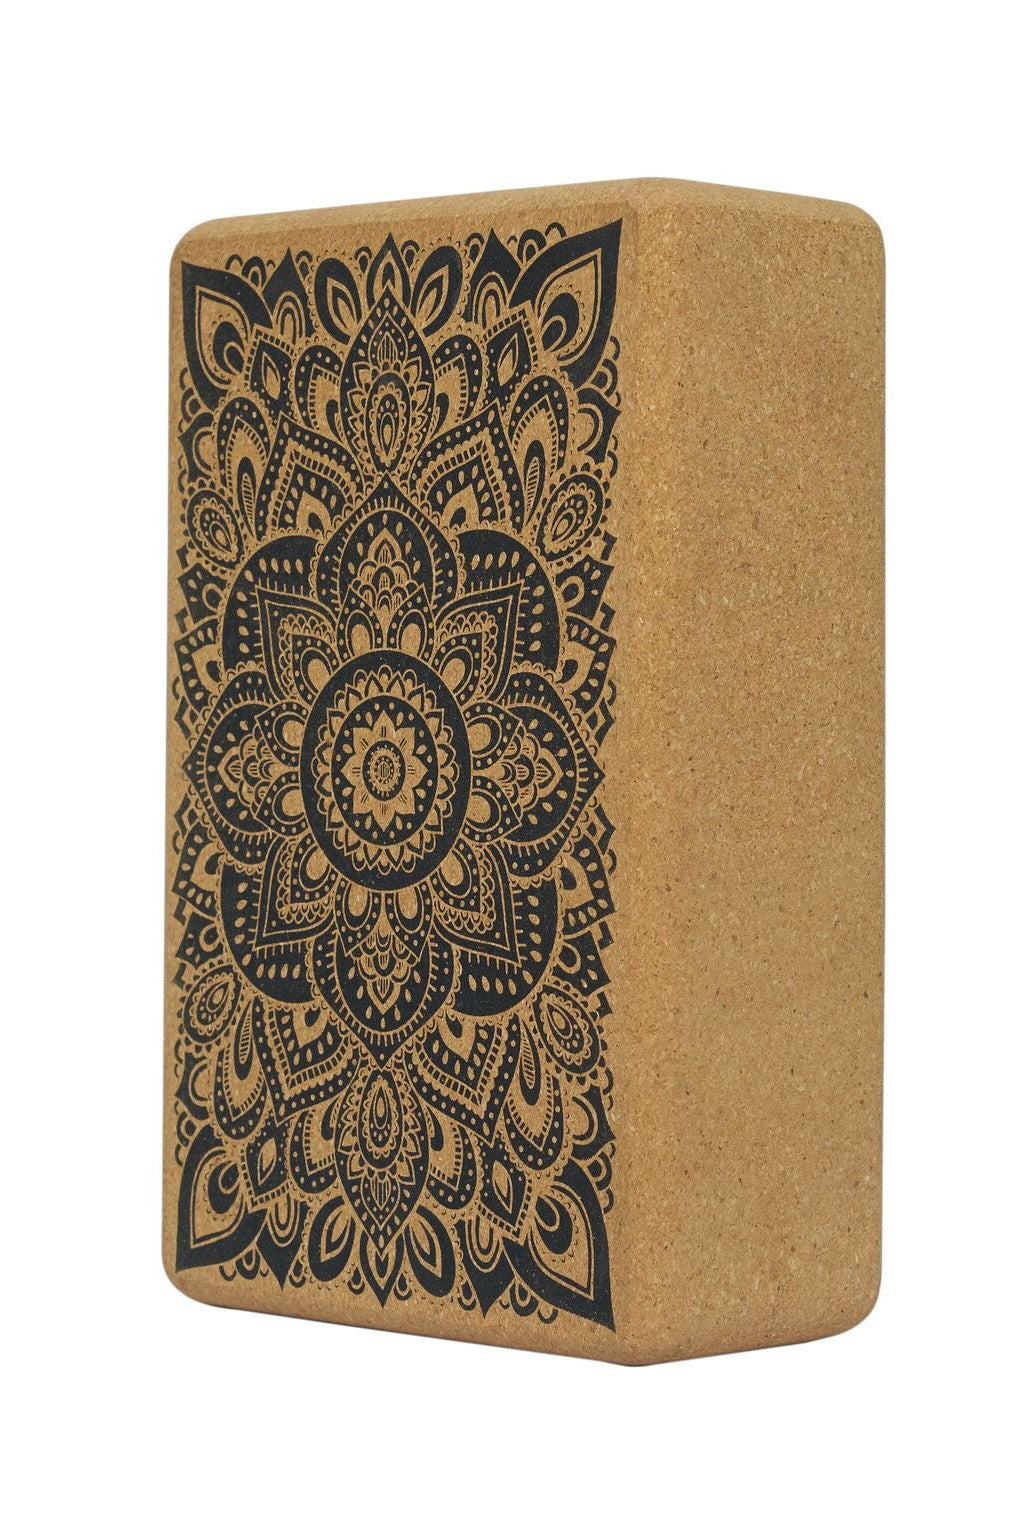 Mandala Black - Cork Block - EMAIL US TO RESERVE YOURS FROM OUR RESTOCKS